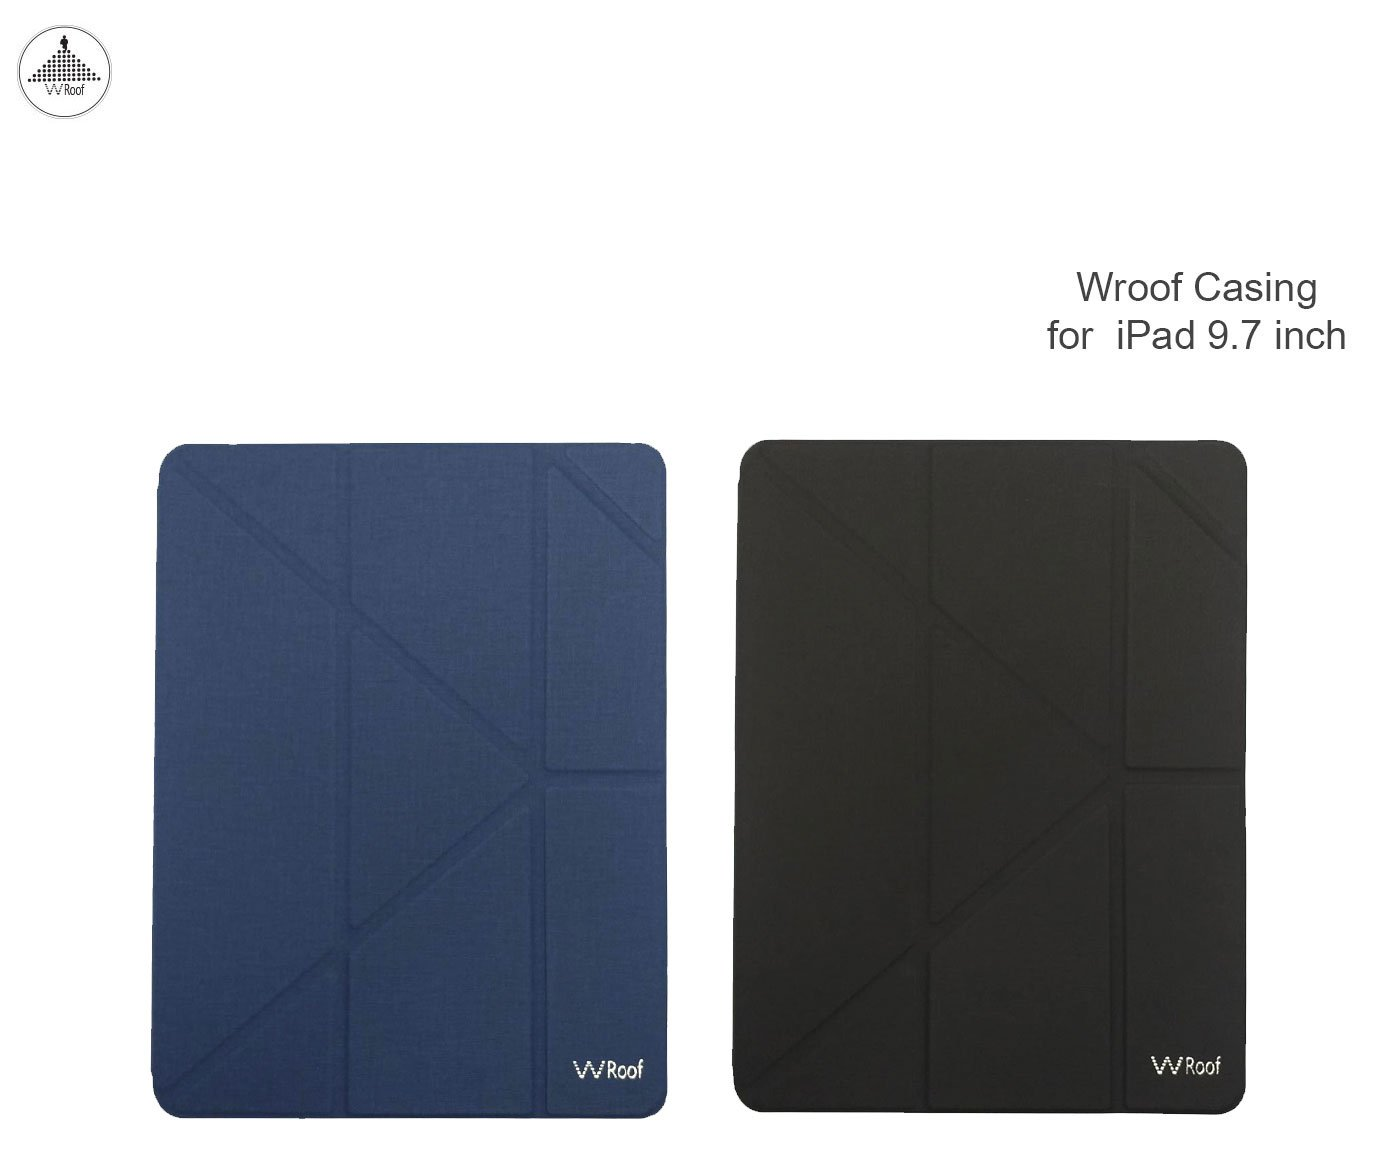 Wroof Leather Case with Pencil Socket for iPad 9.7 inch Navy